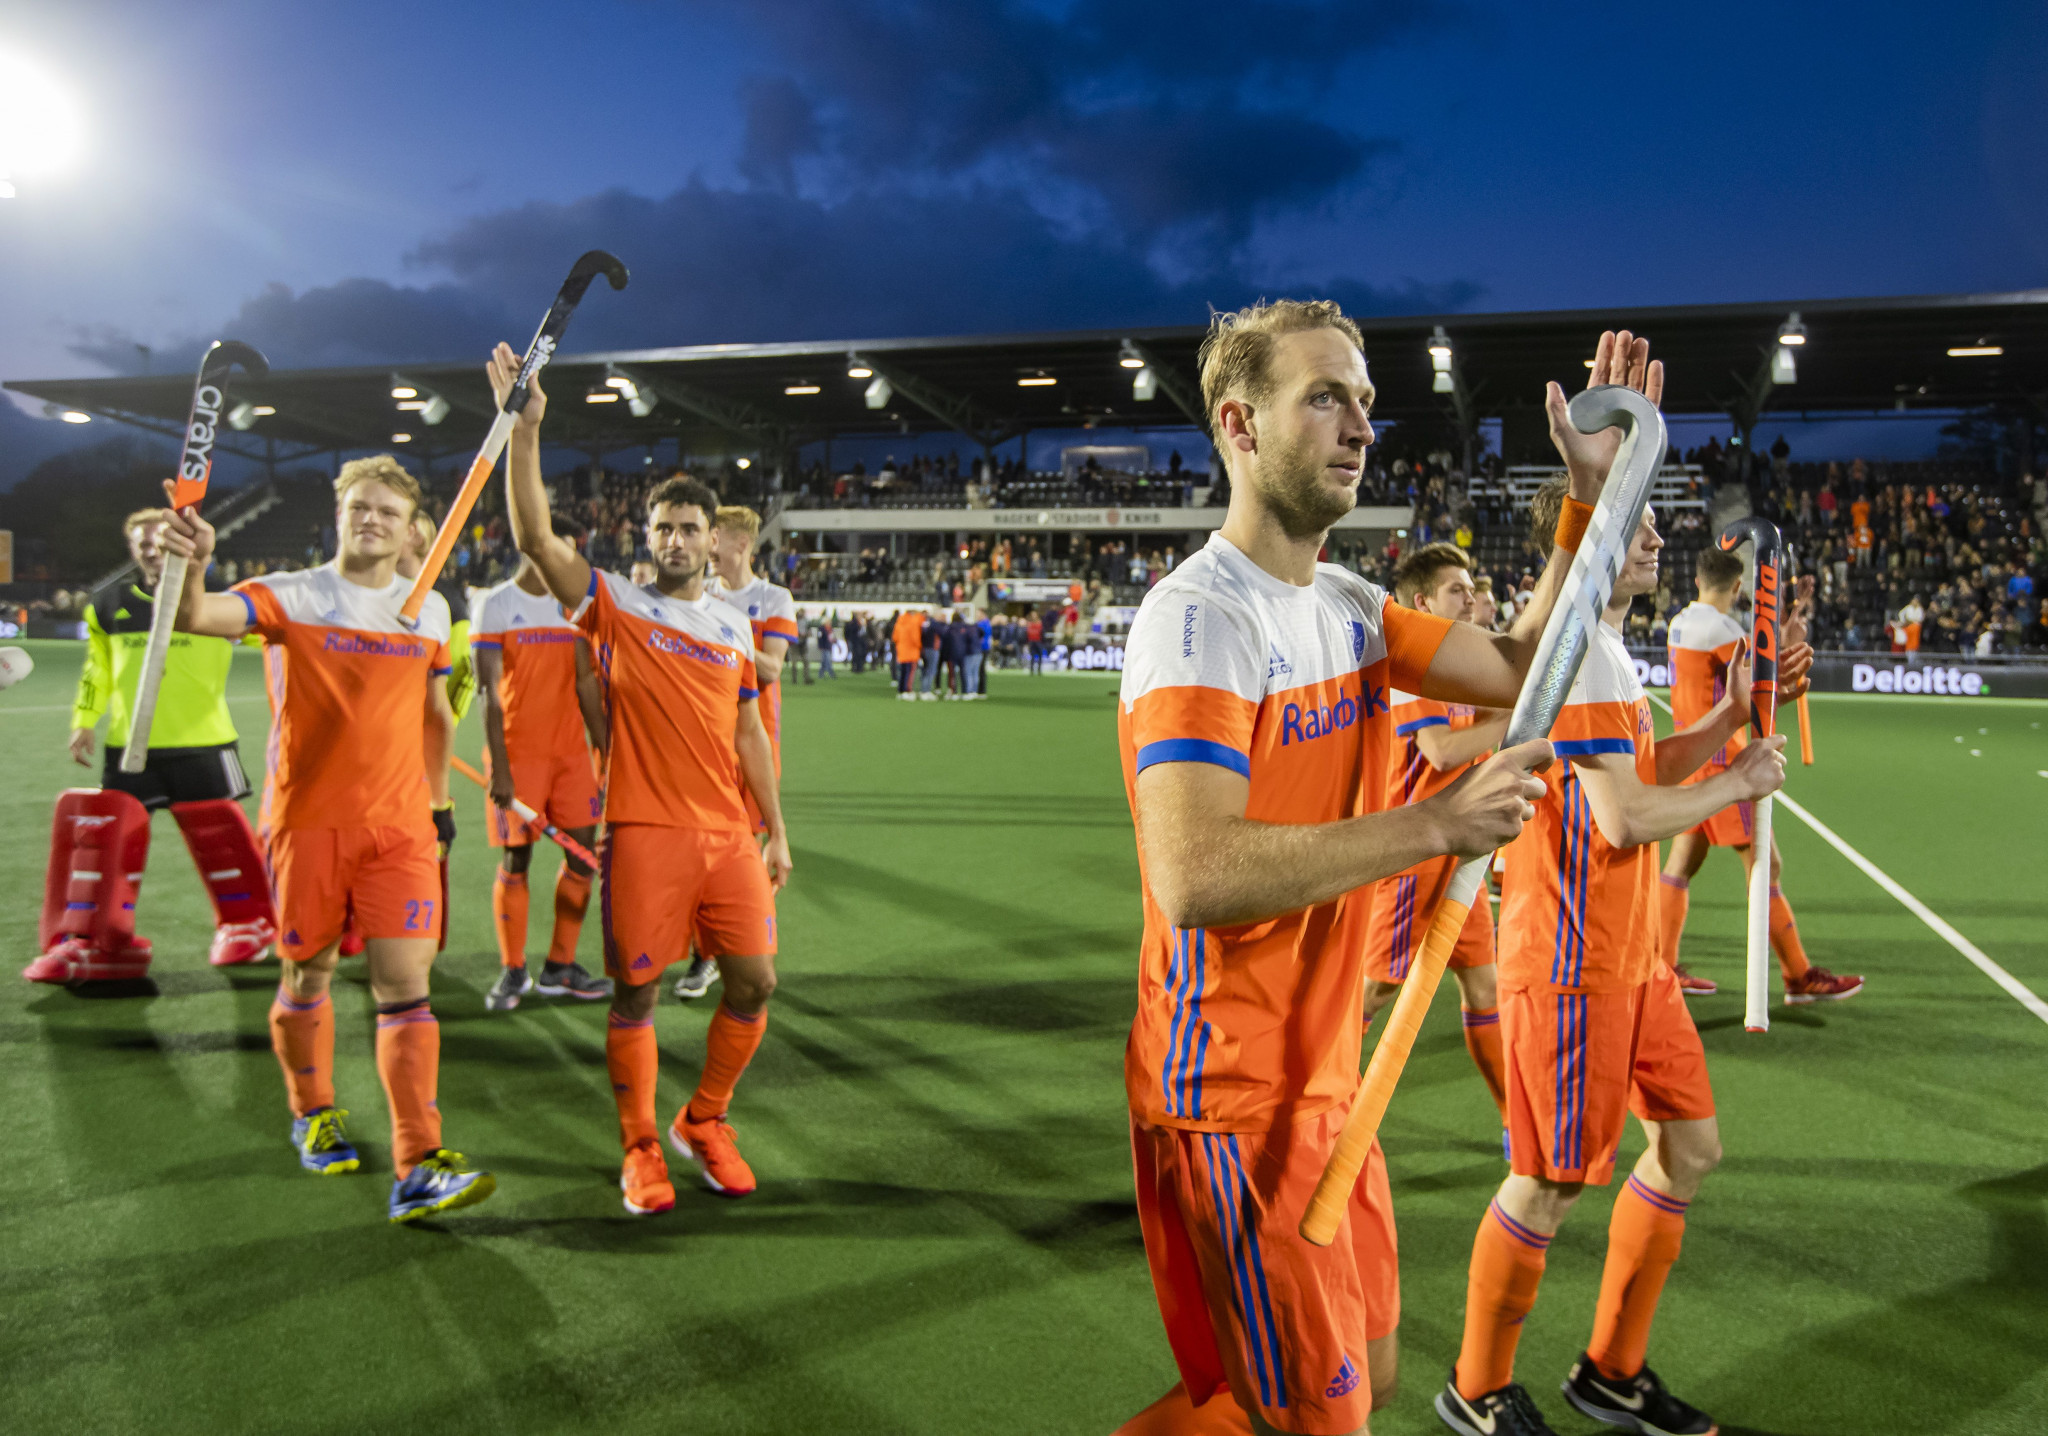 The Netherlands thrash Pakistan to qualify for men's hockey event at Tokyo 2020